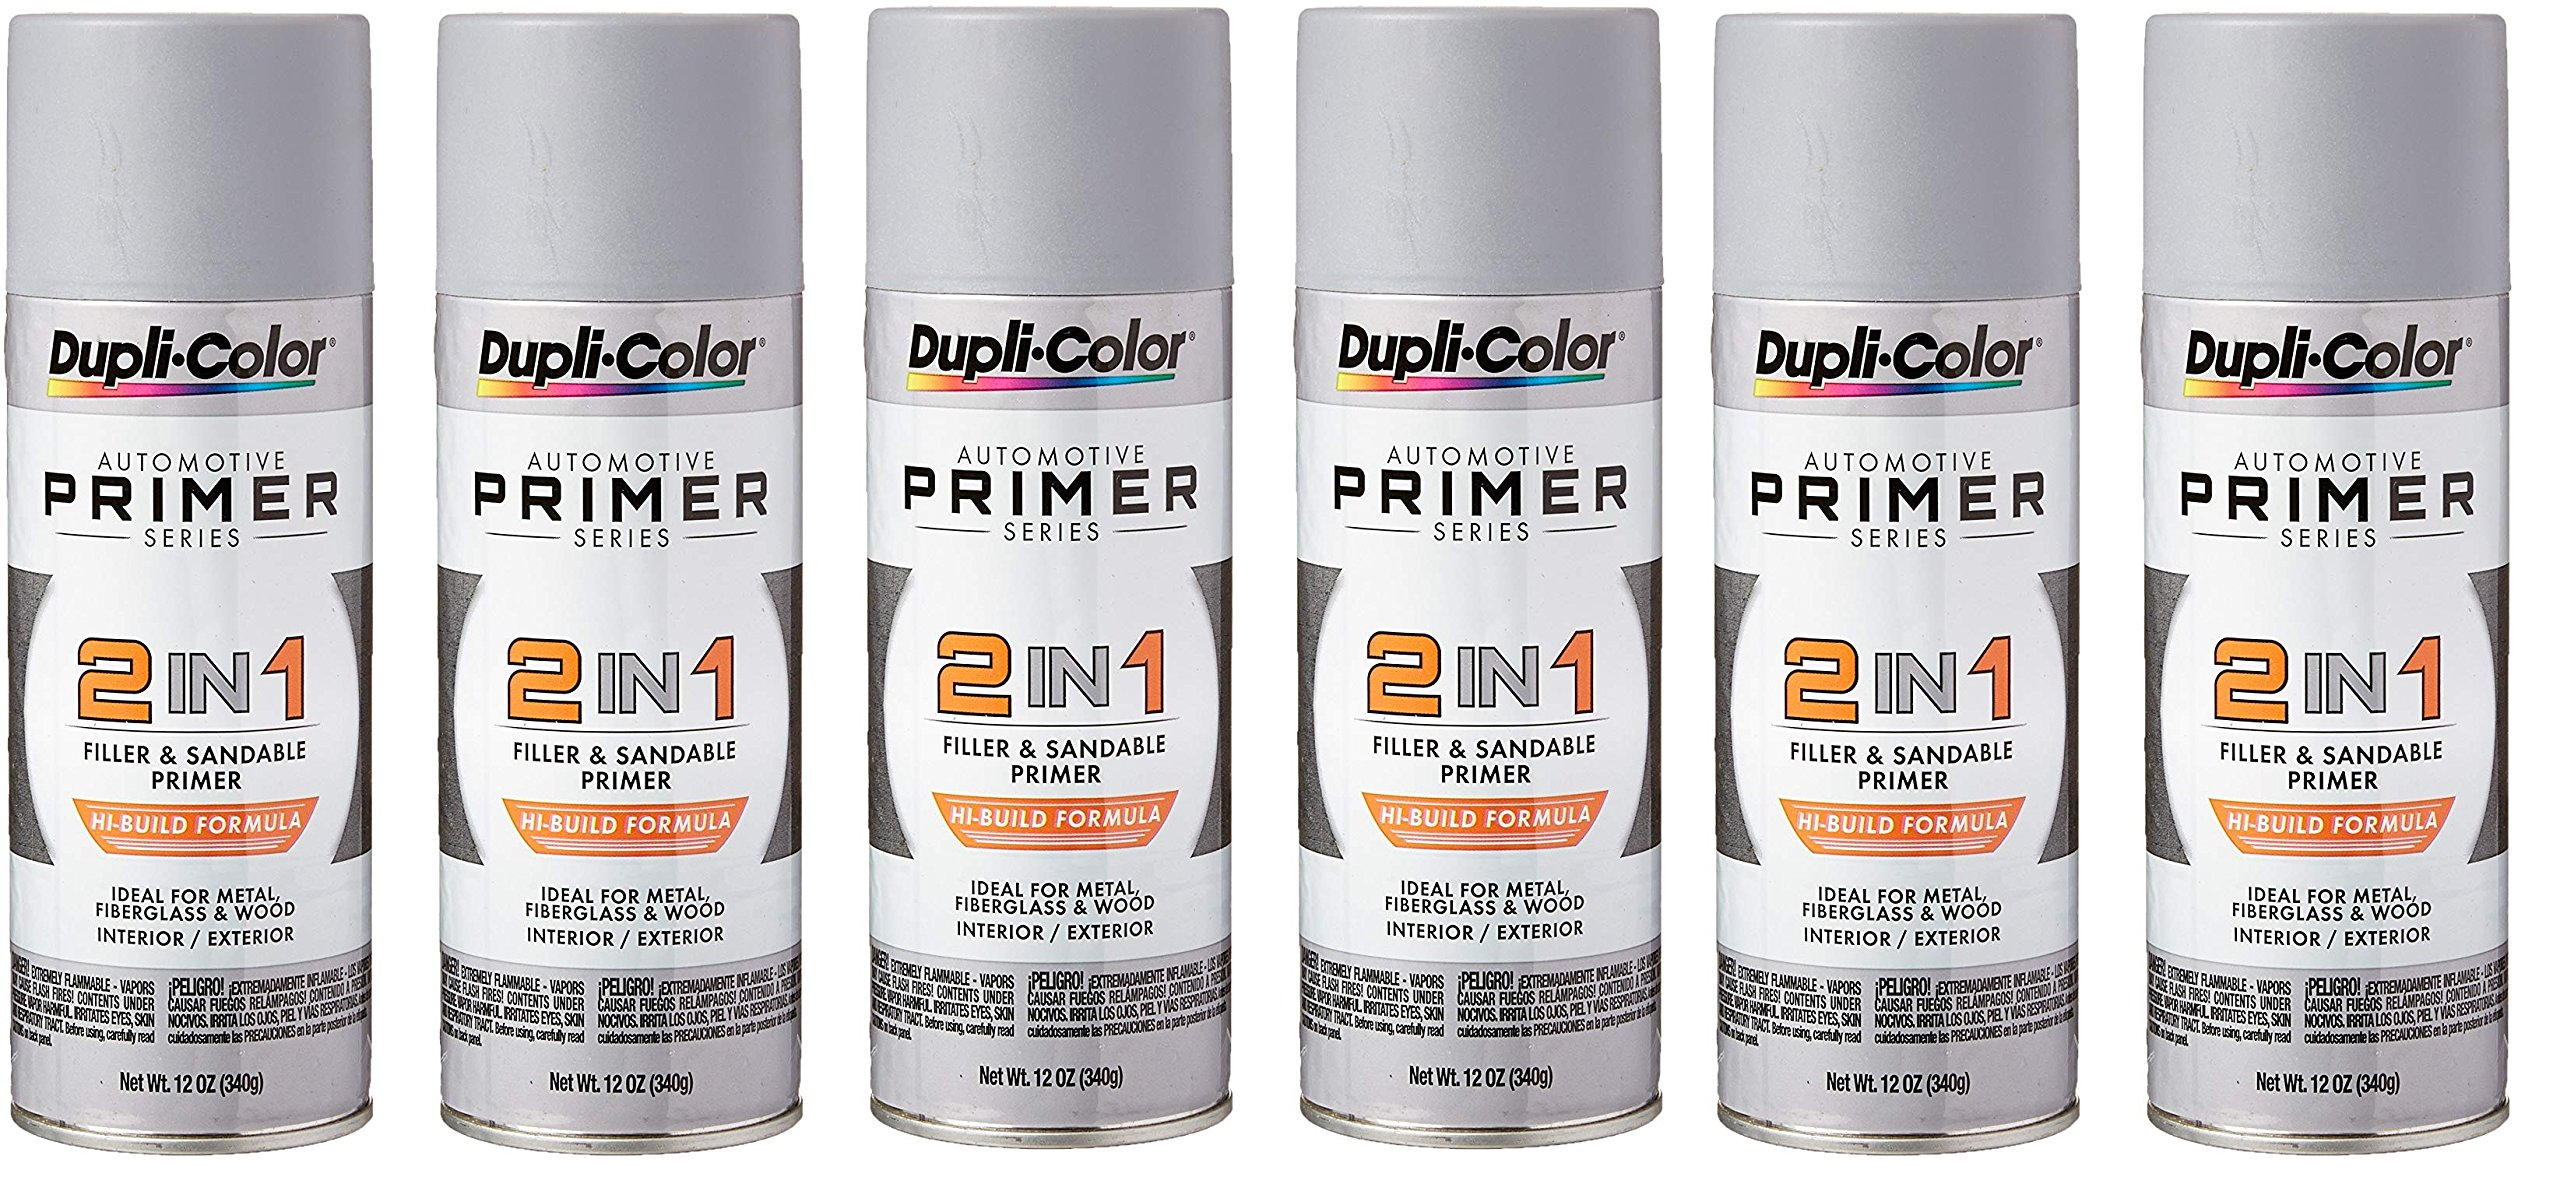 Dupli-Color ® EDAP17007 Filler Primer - 12 fl. oz. (6) by Dupli-Color ® (Image #1)